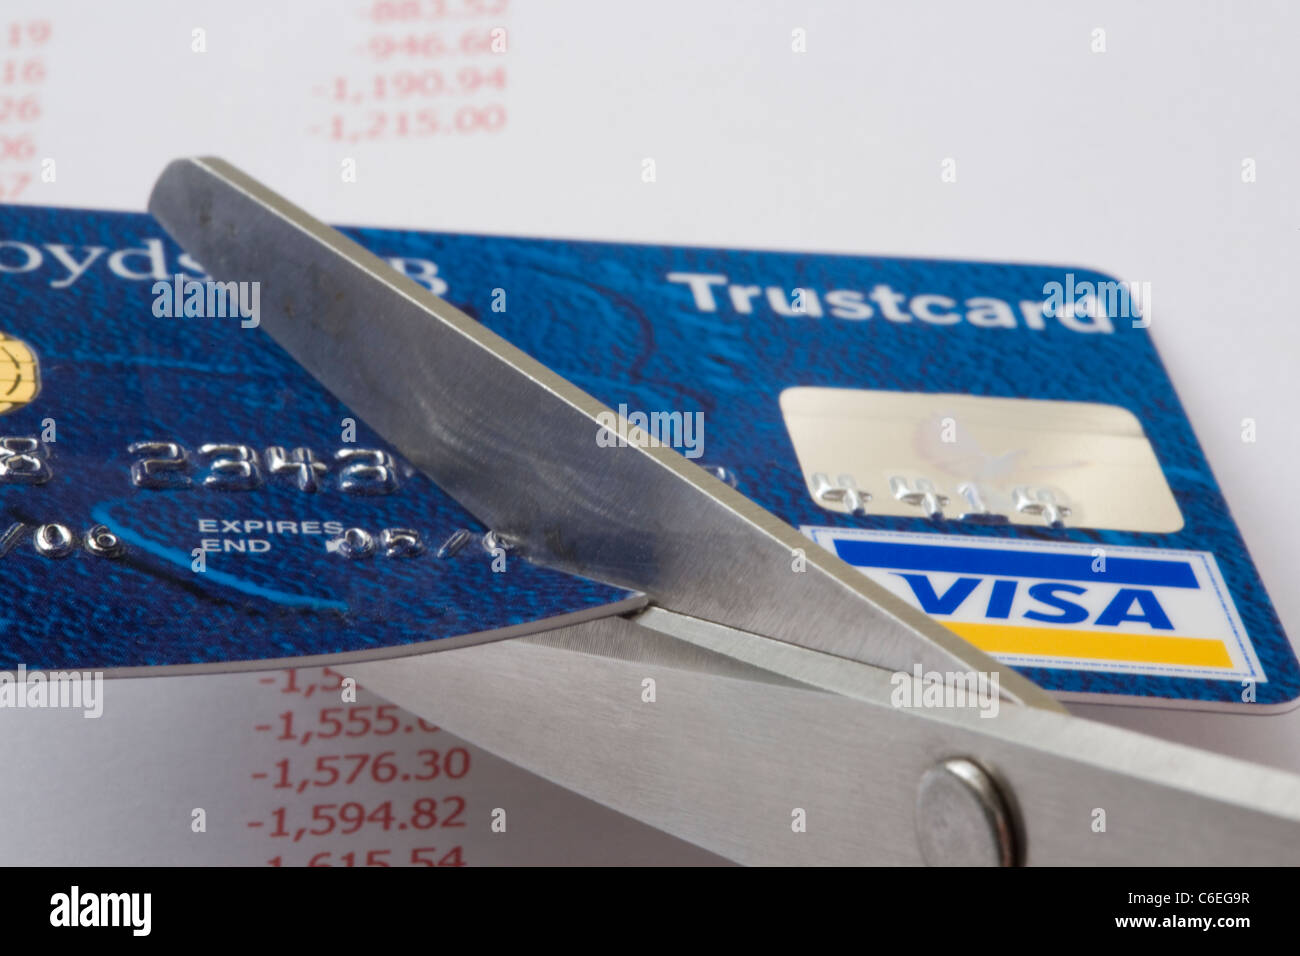 Pair of scissors cutting a Visa credit card in close up above an accounts sheet showing debts in red. England, UK, - Stock Image